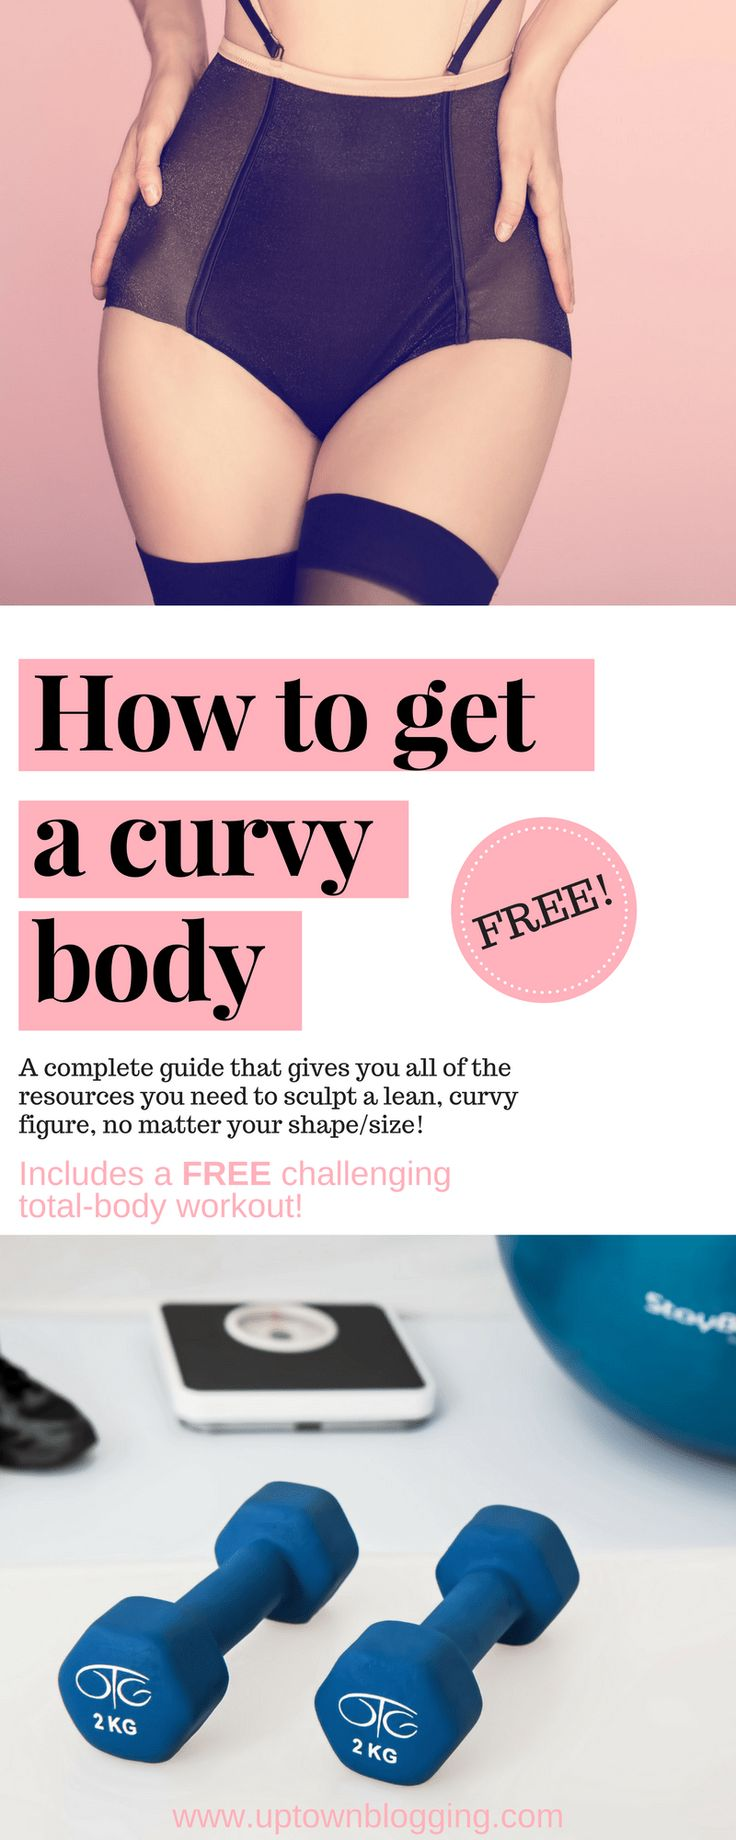 There's so many magic pills and BS guides out there trying to teach you How to get a curvy body. But the majority of them are click-bait. I finally decided enough was enough and created a jam packed guide on how you can achieve a fit, curvy figure. No magic here, just hard work and consistency. My guide will give you all of the resources you need to start sculpting your new fit figure, today!